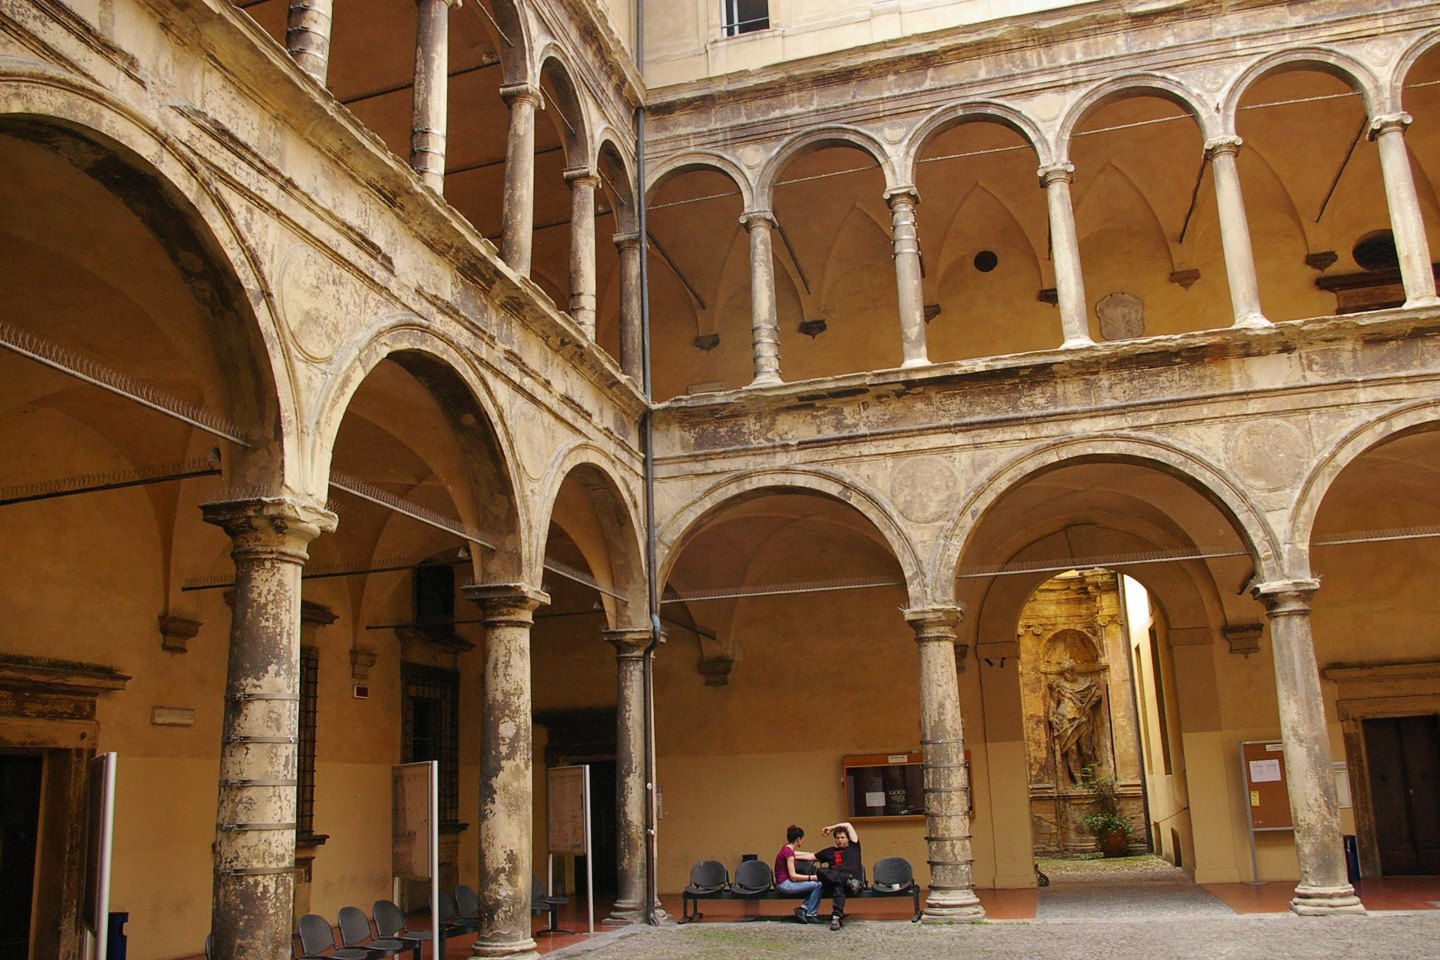 Founded in 1088. Received its university charter from Pope Clement III in 1189.